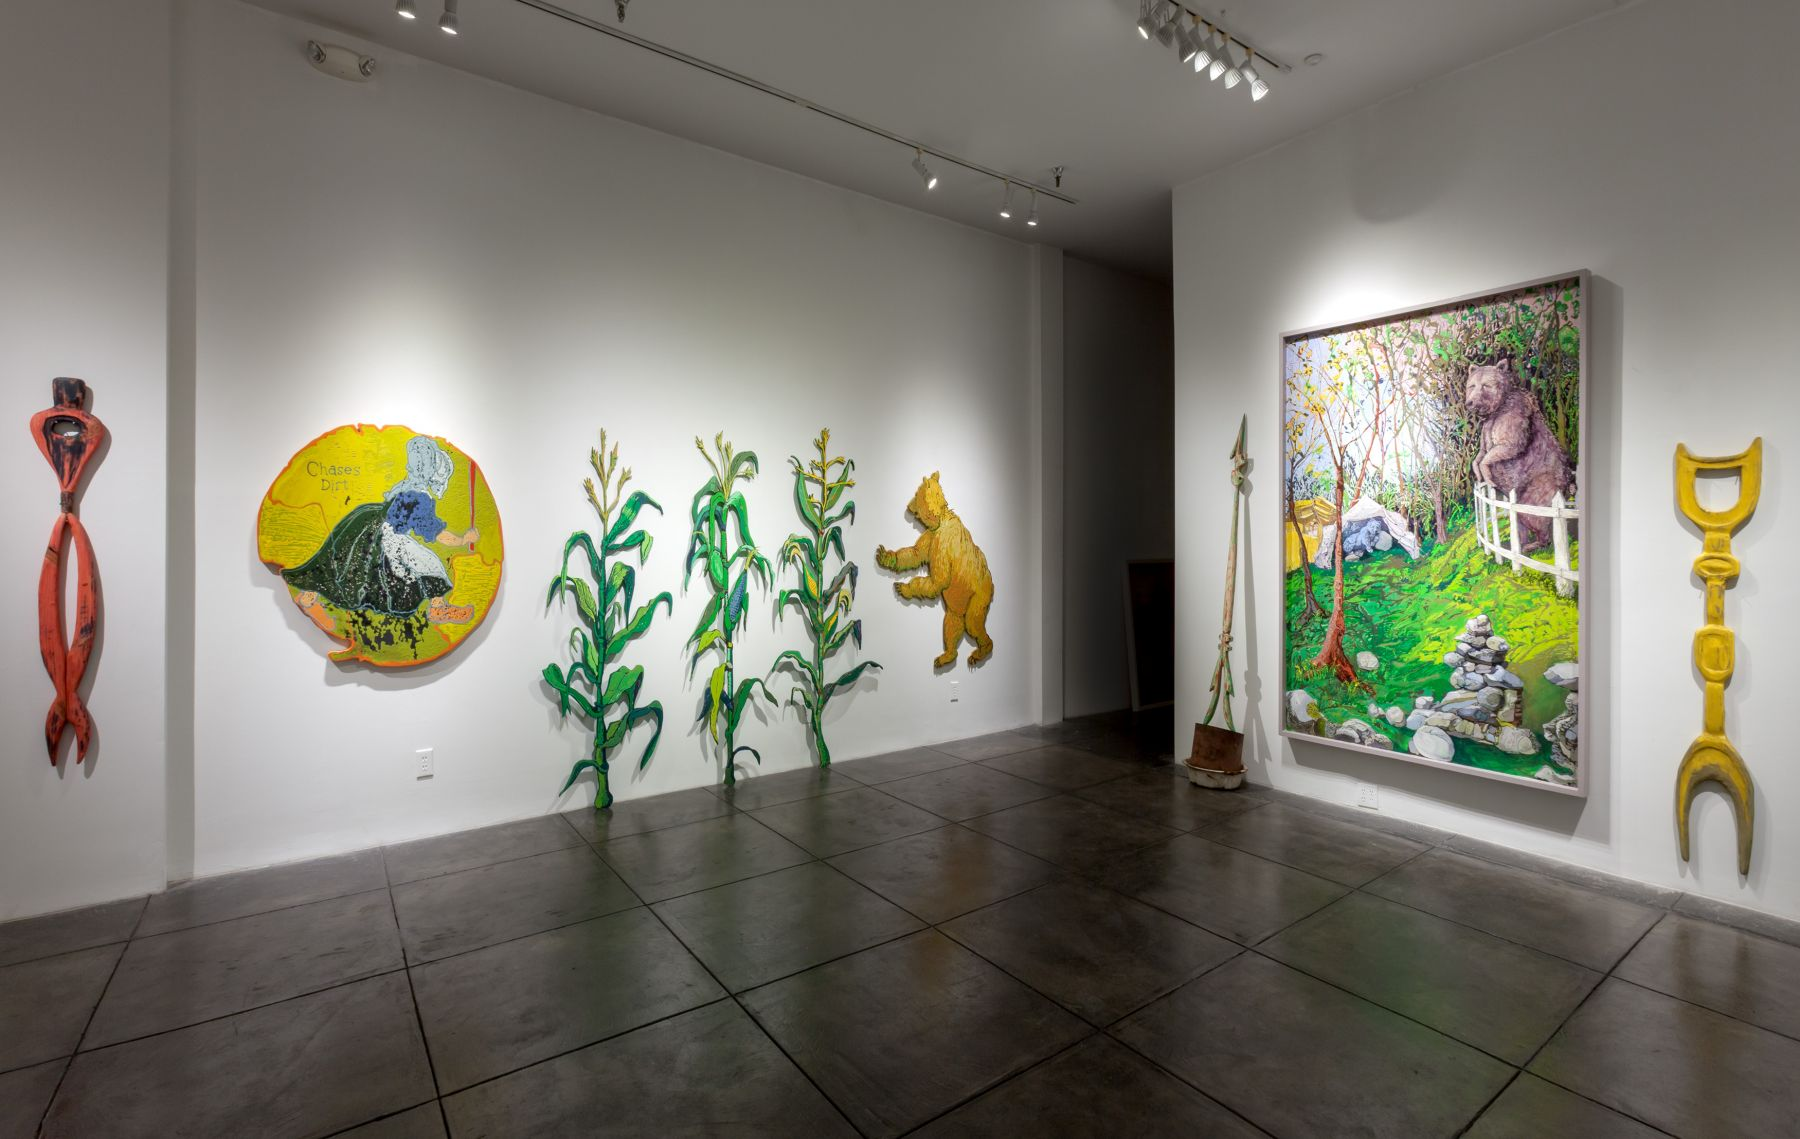 GINA PHILLIPS III Stronger Than Dirt, [Main Gallery Installation View]